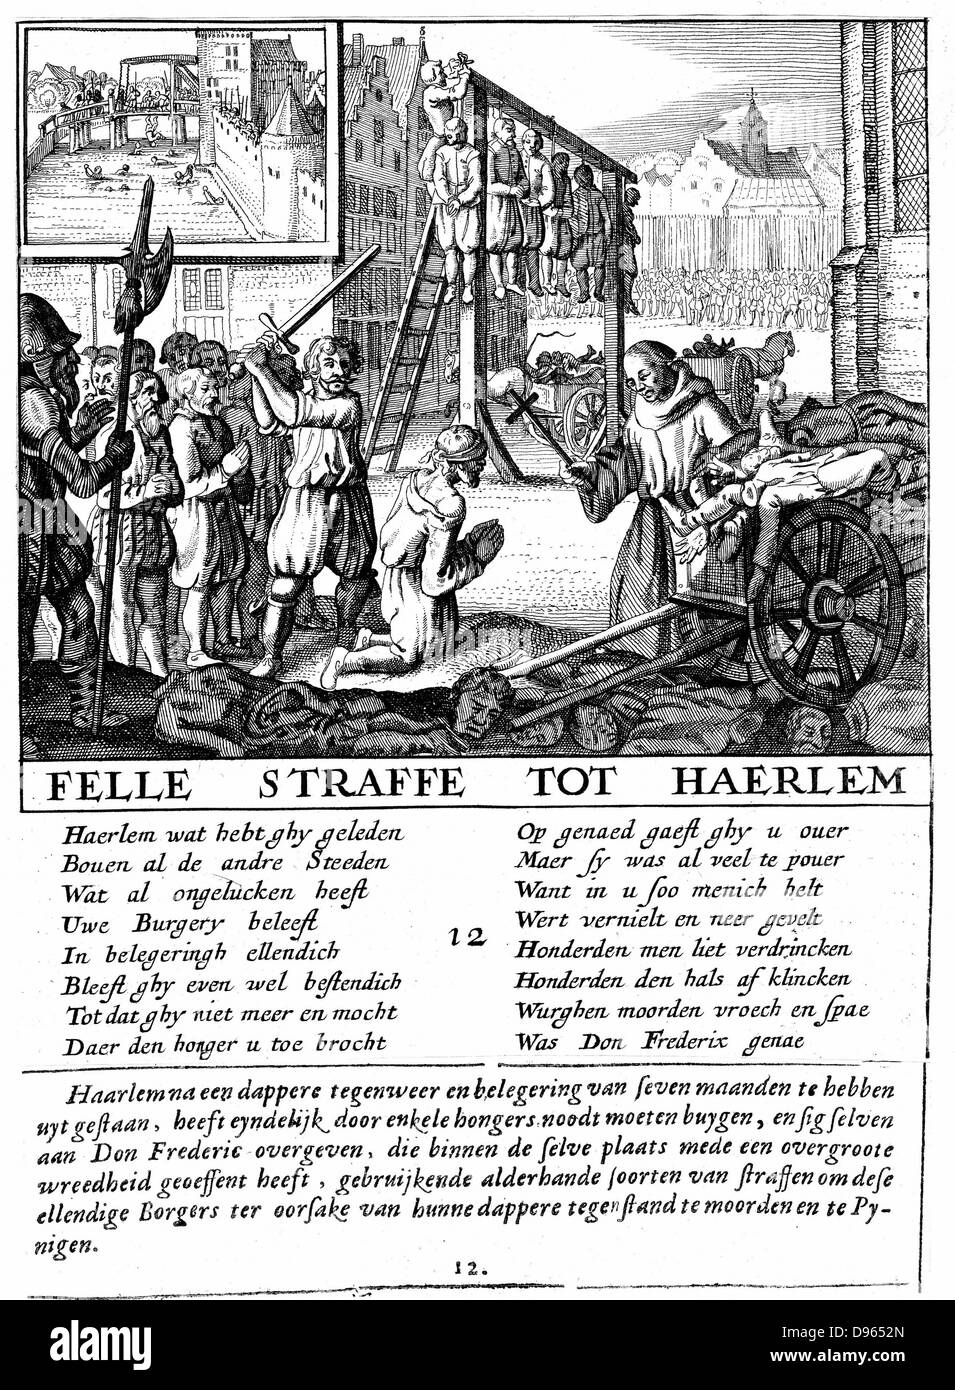 Protestants in the Netherlands being executed for heresy during Duke of Alva's repressive rule (1567-73). Copperplate - Stock Image